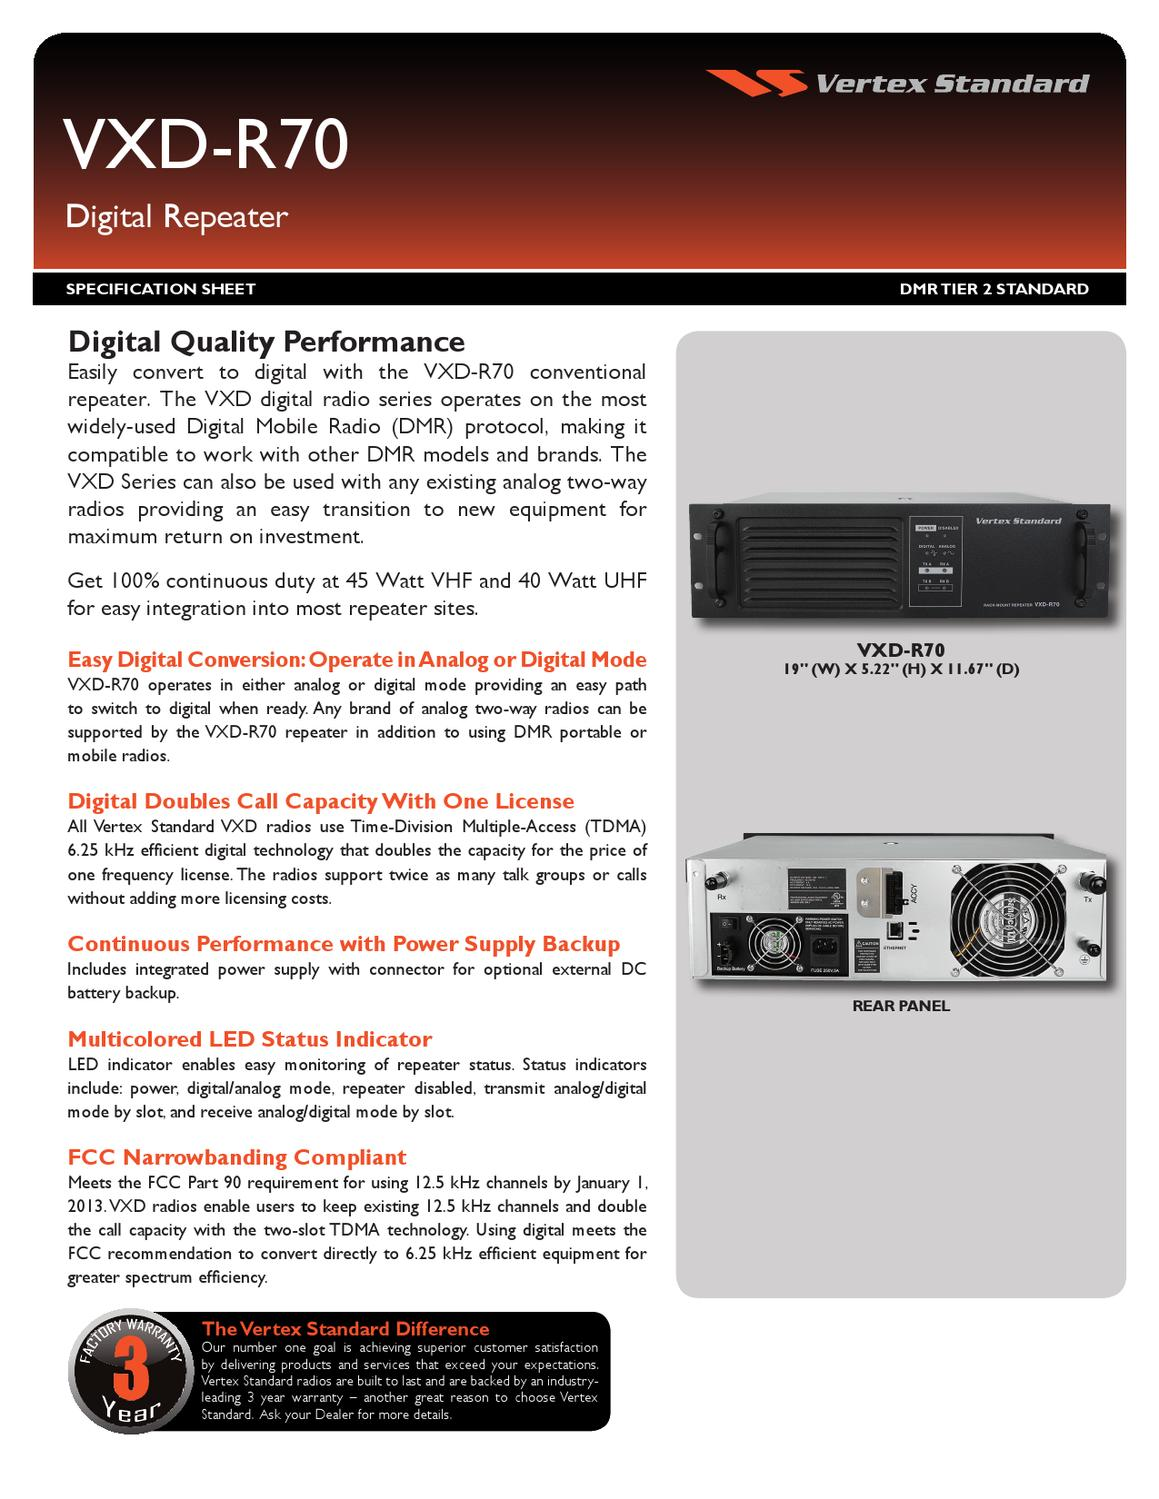 Vertex_VXD-R70_SpecSheet_FINAL_0511 by Advantec Distribution - issuu